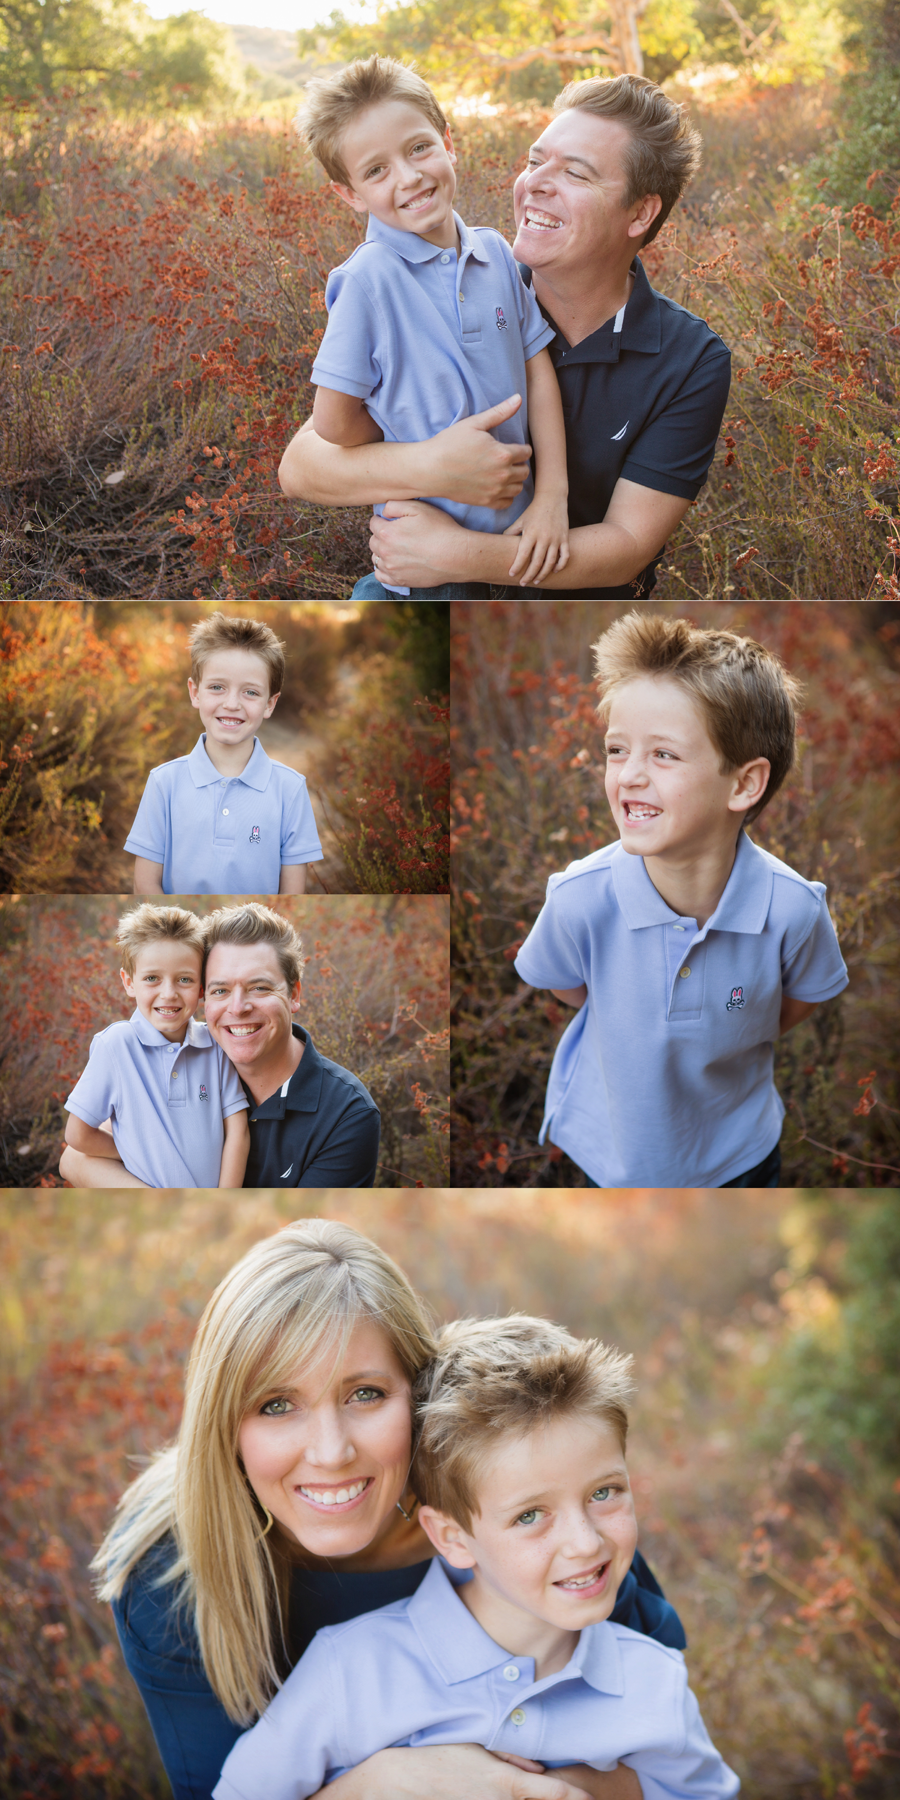 Family Photographer in Westlake Village